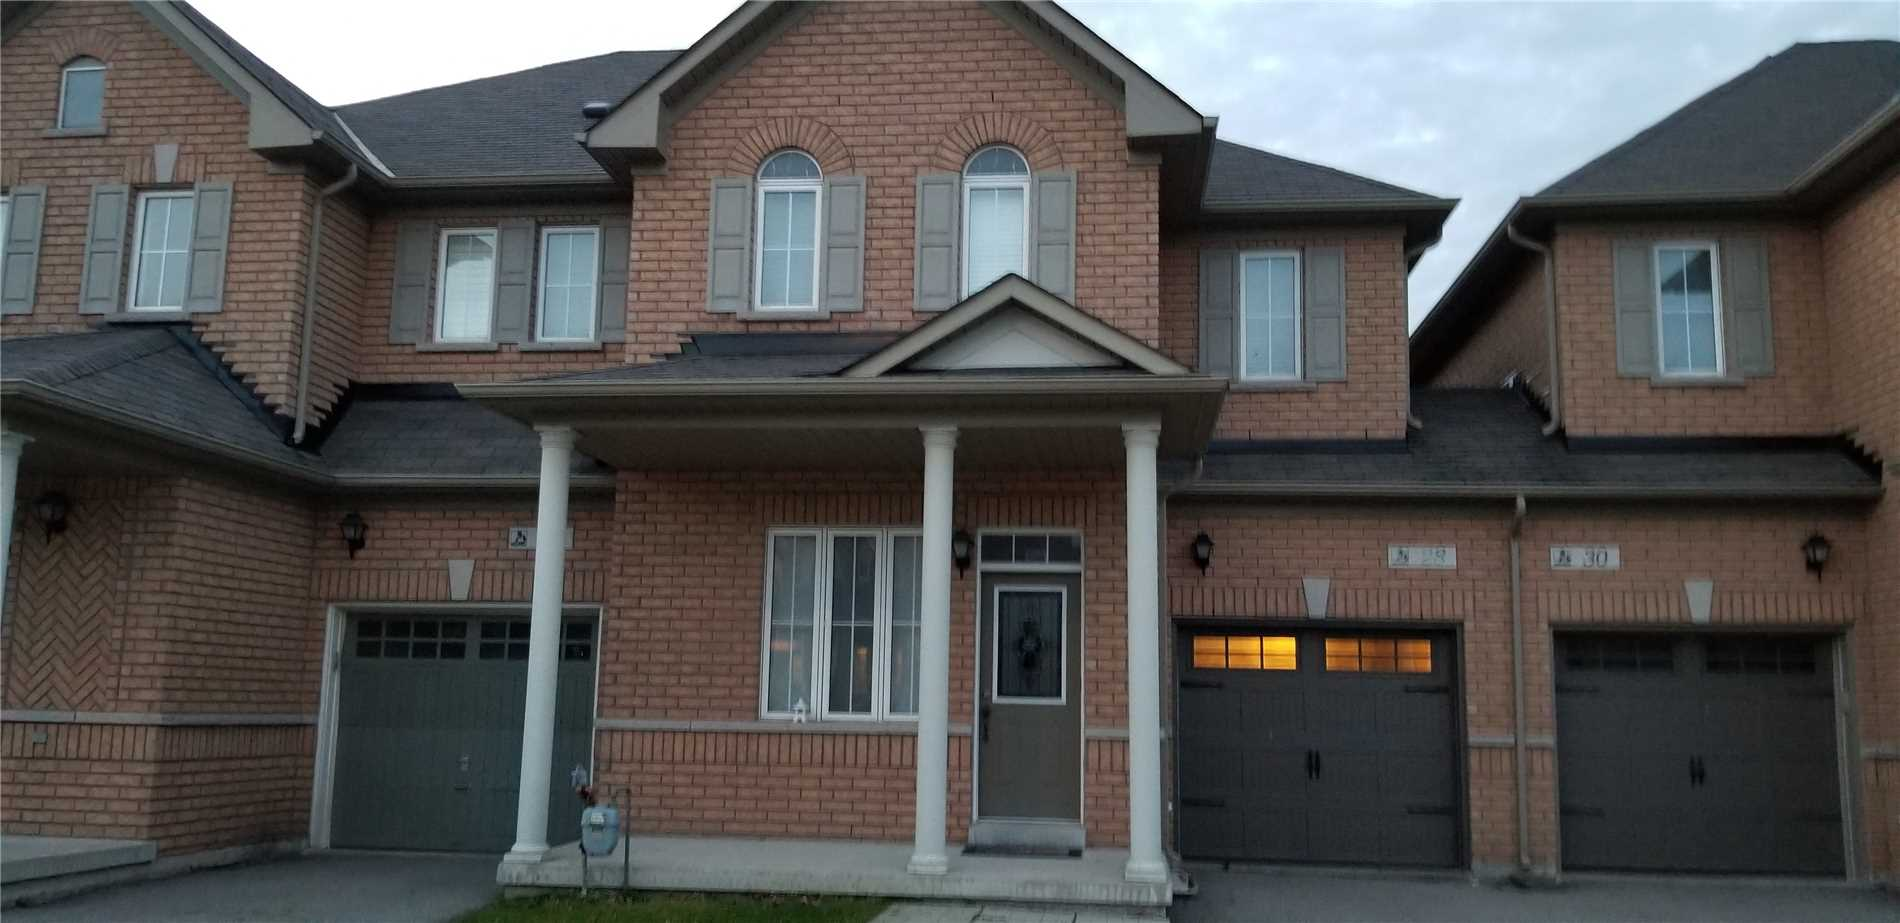 28 Millwright Ave' Richmond Hill' Ontario L4E5A8 <br>MLS® Number: N4462752<br>For Sale: $829'000<br>Bedrooms: 3